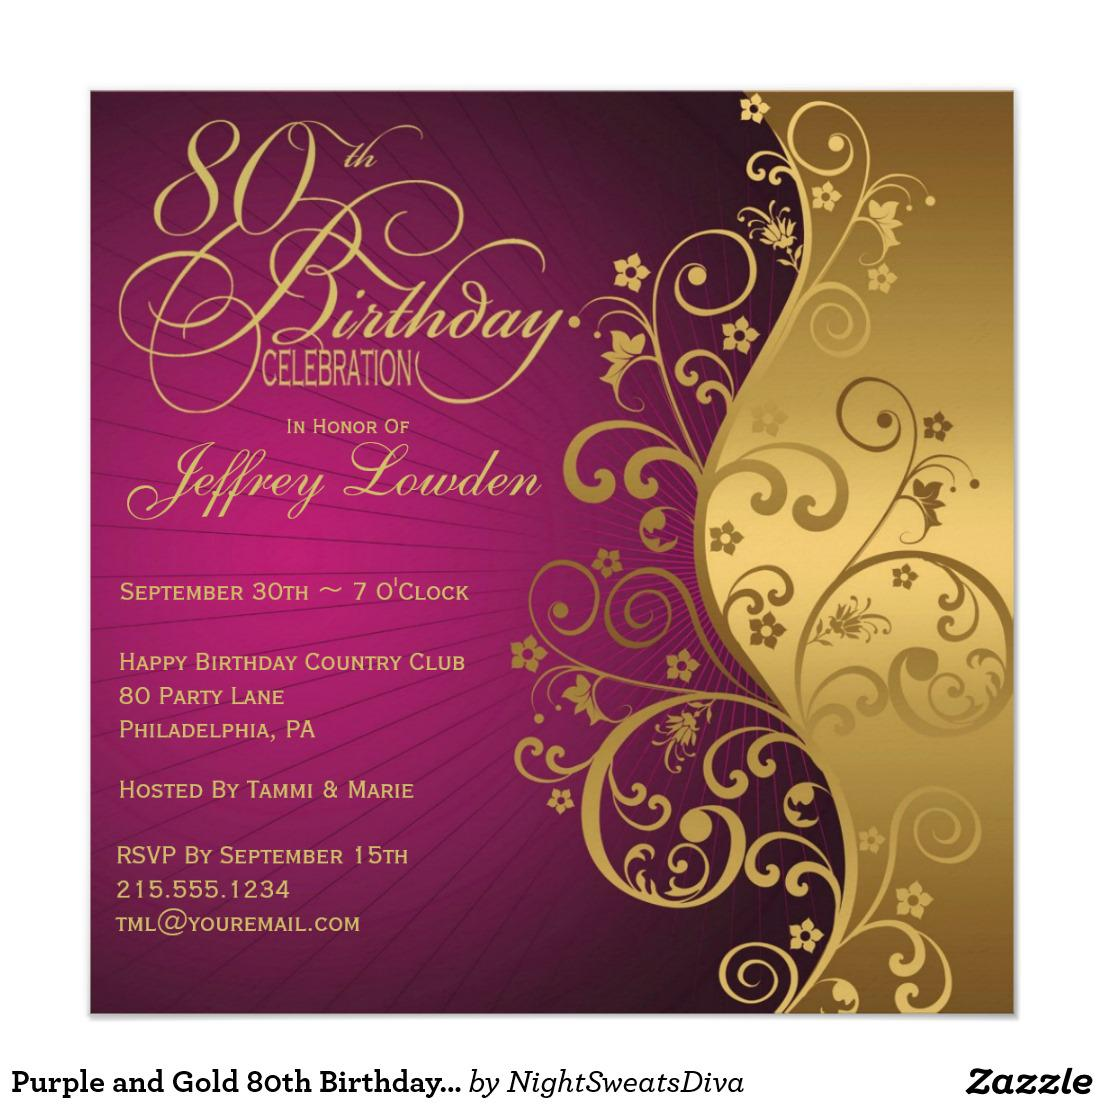 15 sample 80th birthday invitations templates ideas free sample 80th birthday party invitations purple and gold invitation luxury cards celebrations womens samples stopboris Choice Image